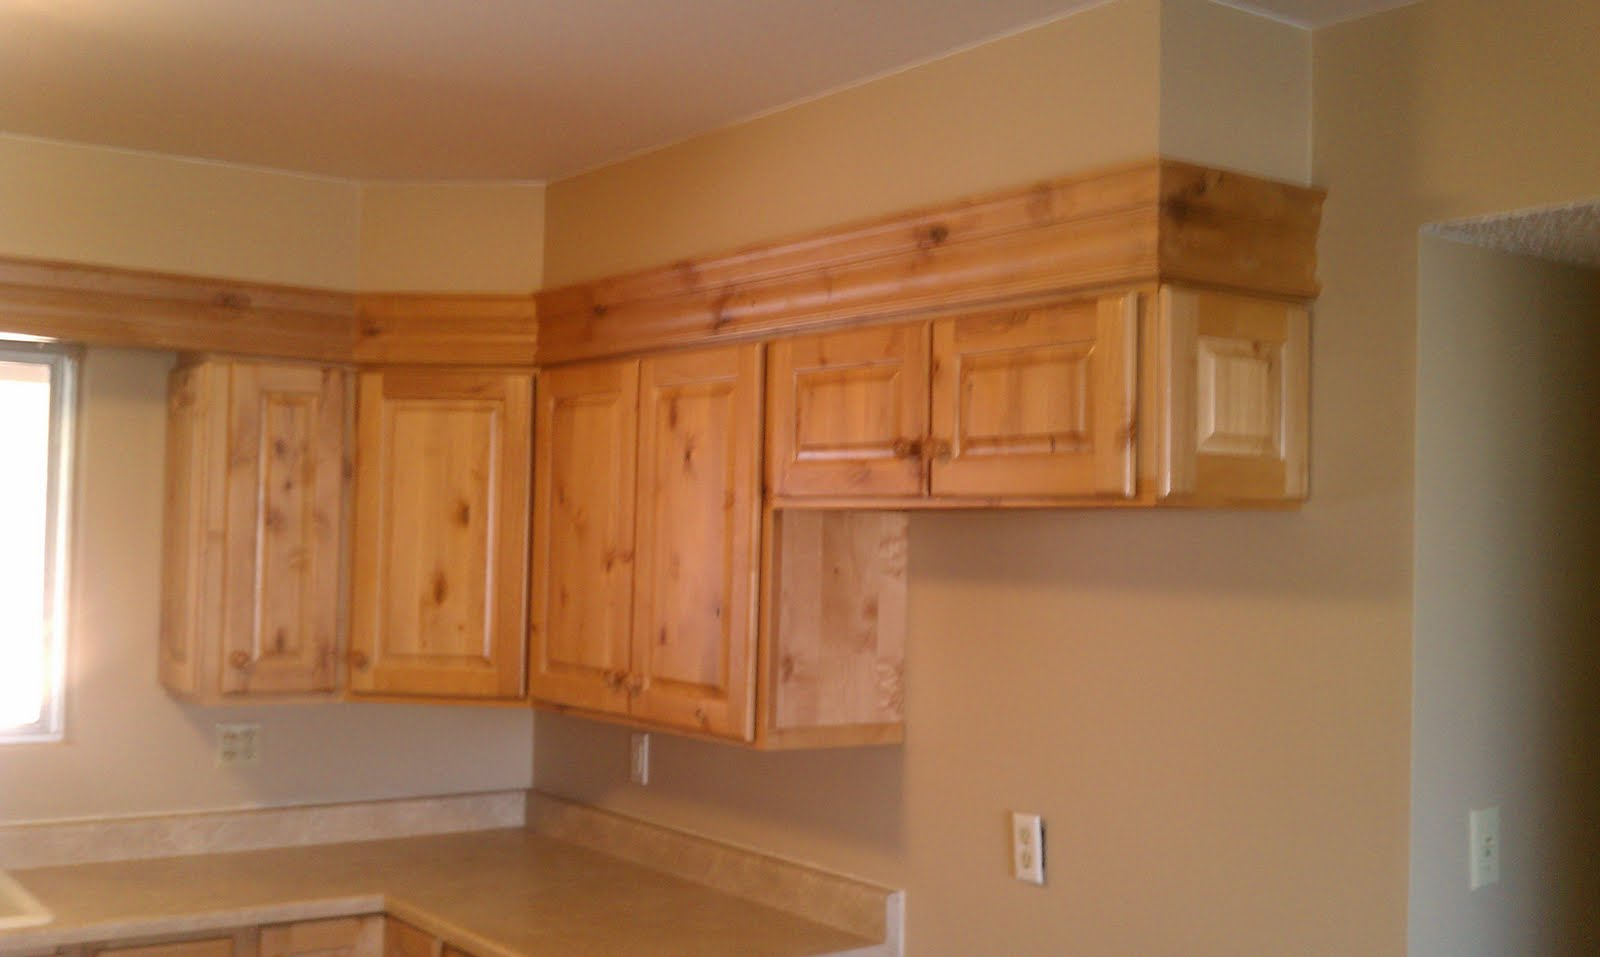 Goodwinmillandcabinet december 2011 for Oak crown molding for kitchen cabinets